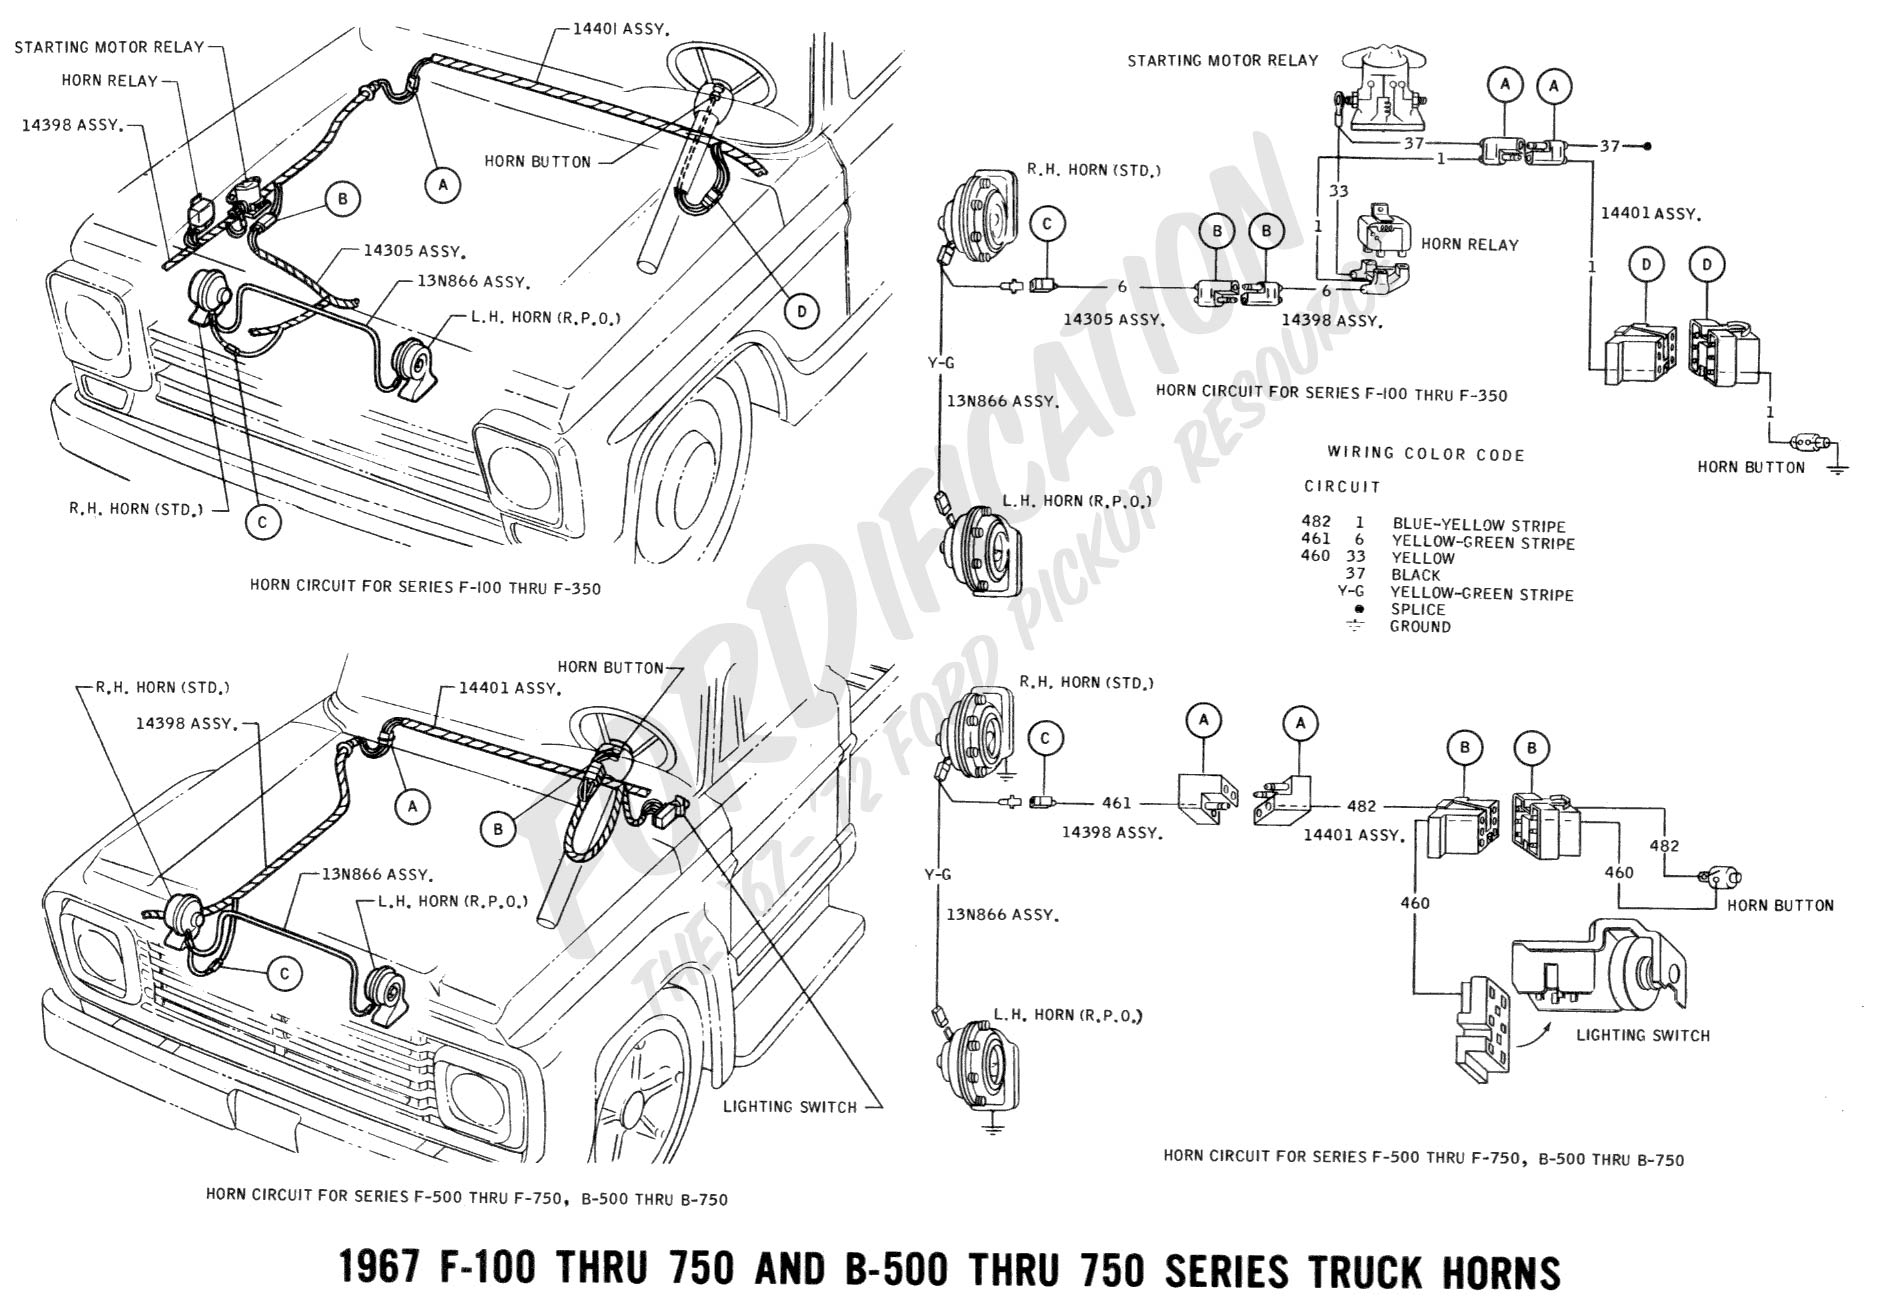 Radio Wiring Diagram For 2004 Ford F 250 Trusted Diagrams 1969 Triumph Tympanium Truck Technical Drawings And Schematics Section H Harness 1977